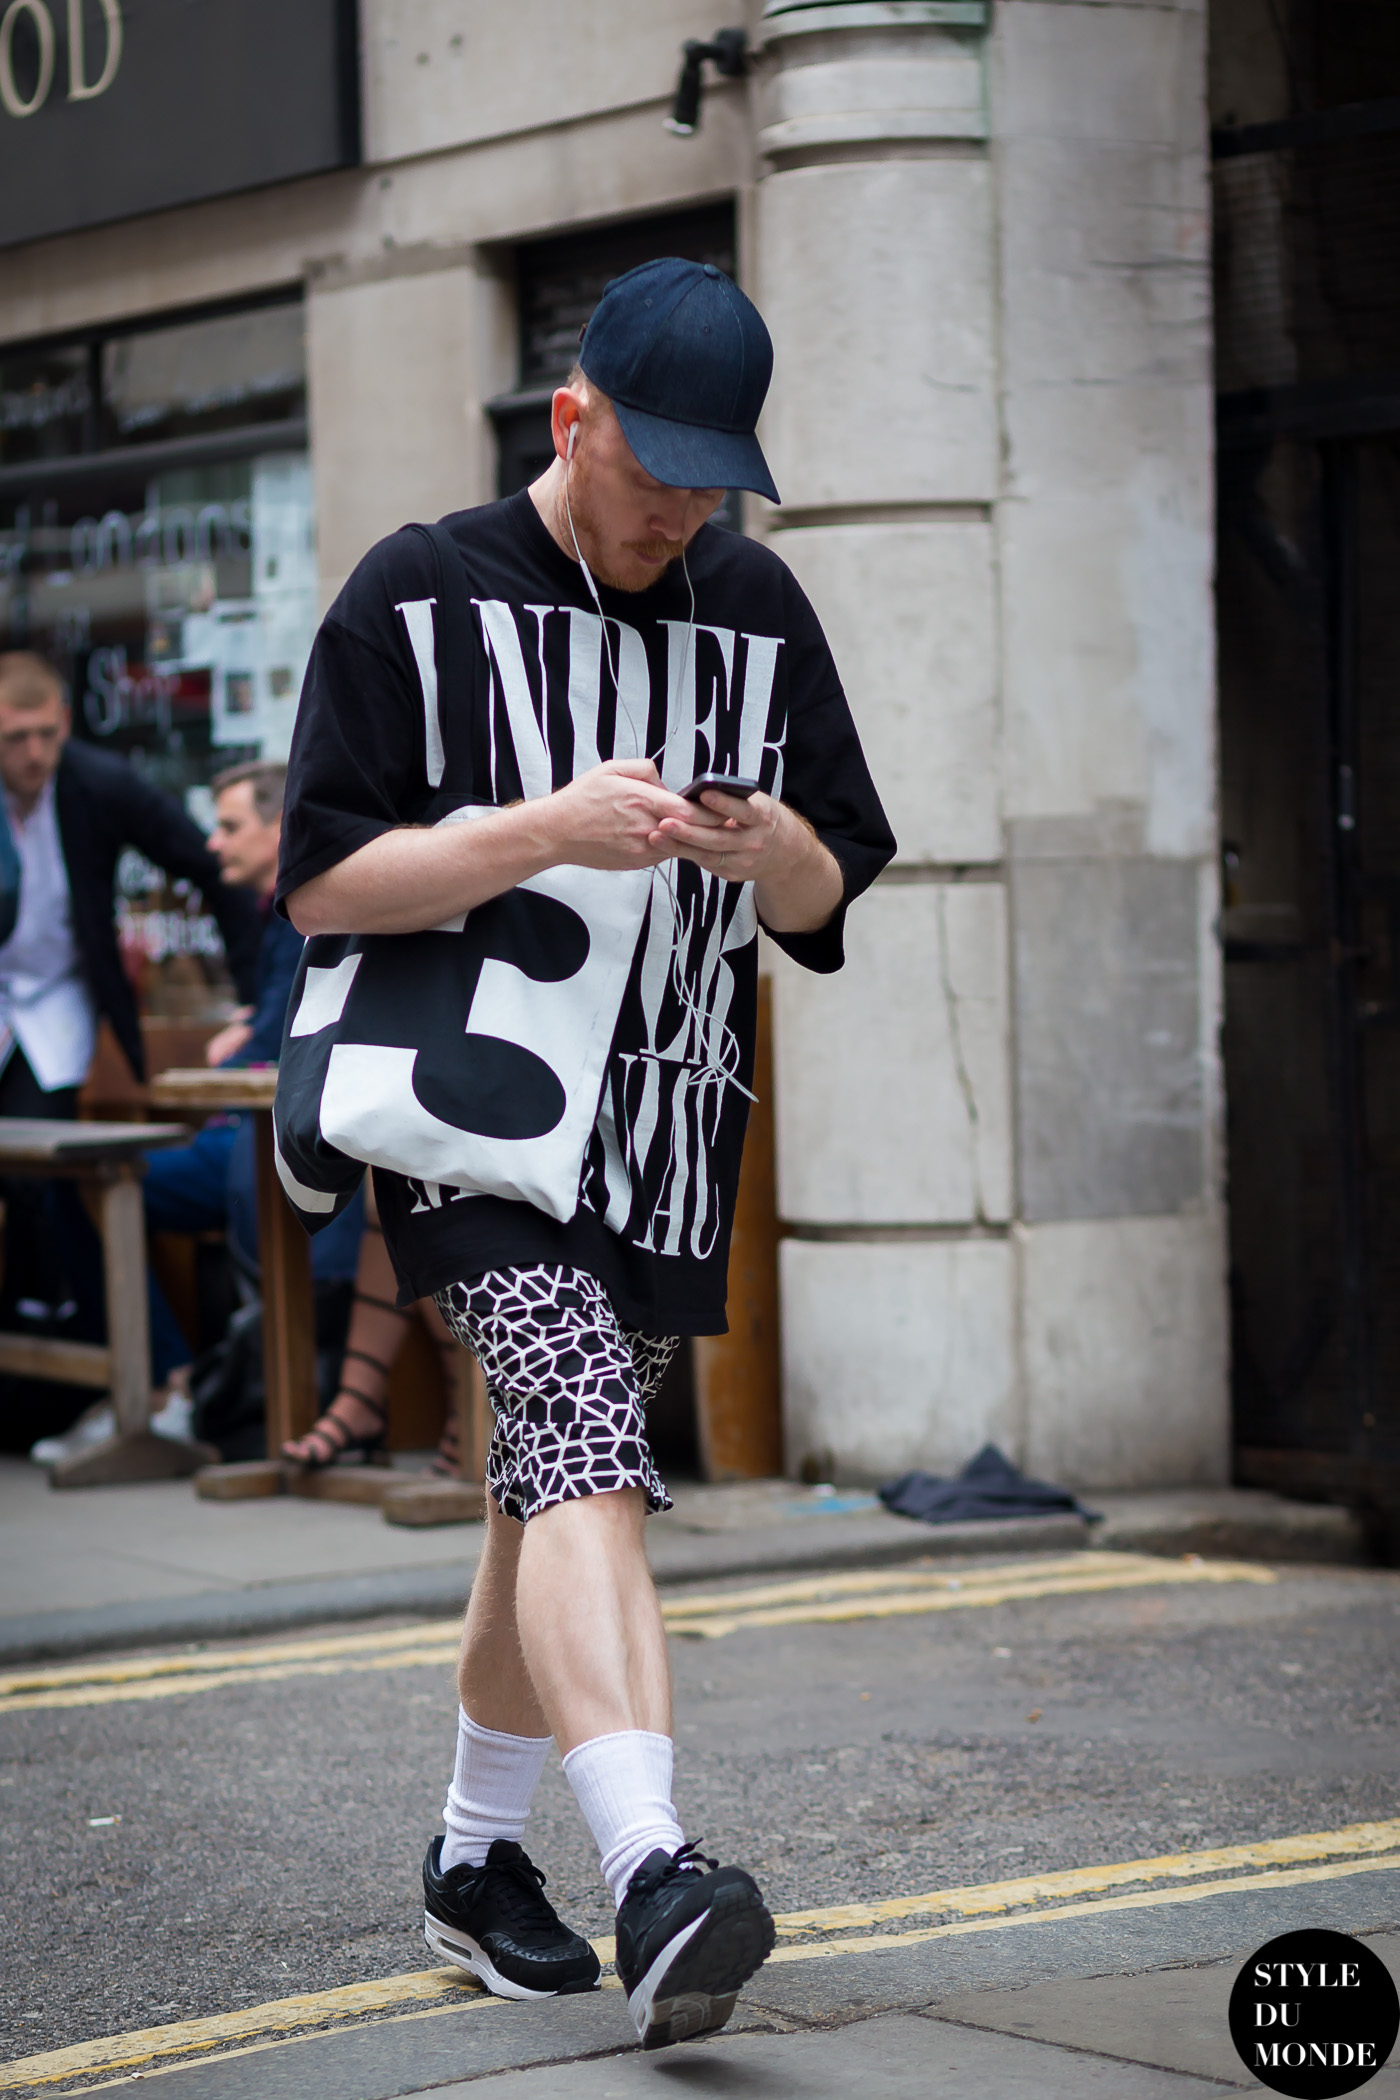 Before Topman Street Style Street Fashion Streetsnaps by STYLEDUMONDE Street Style Fashion Photography